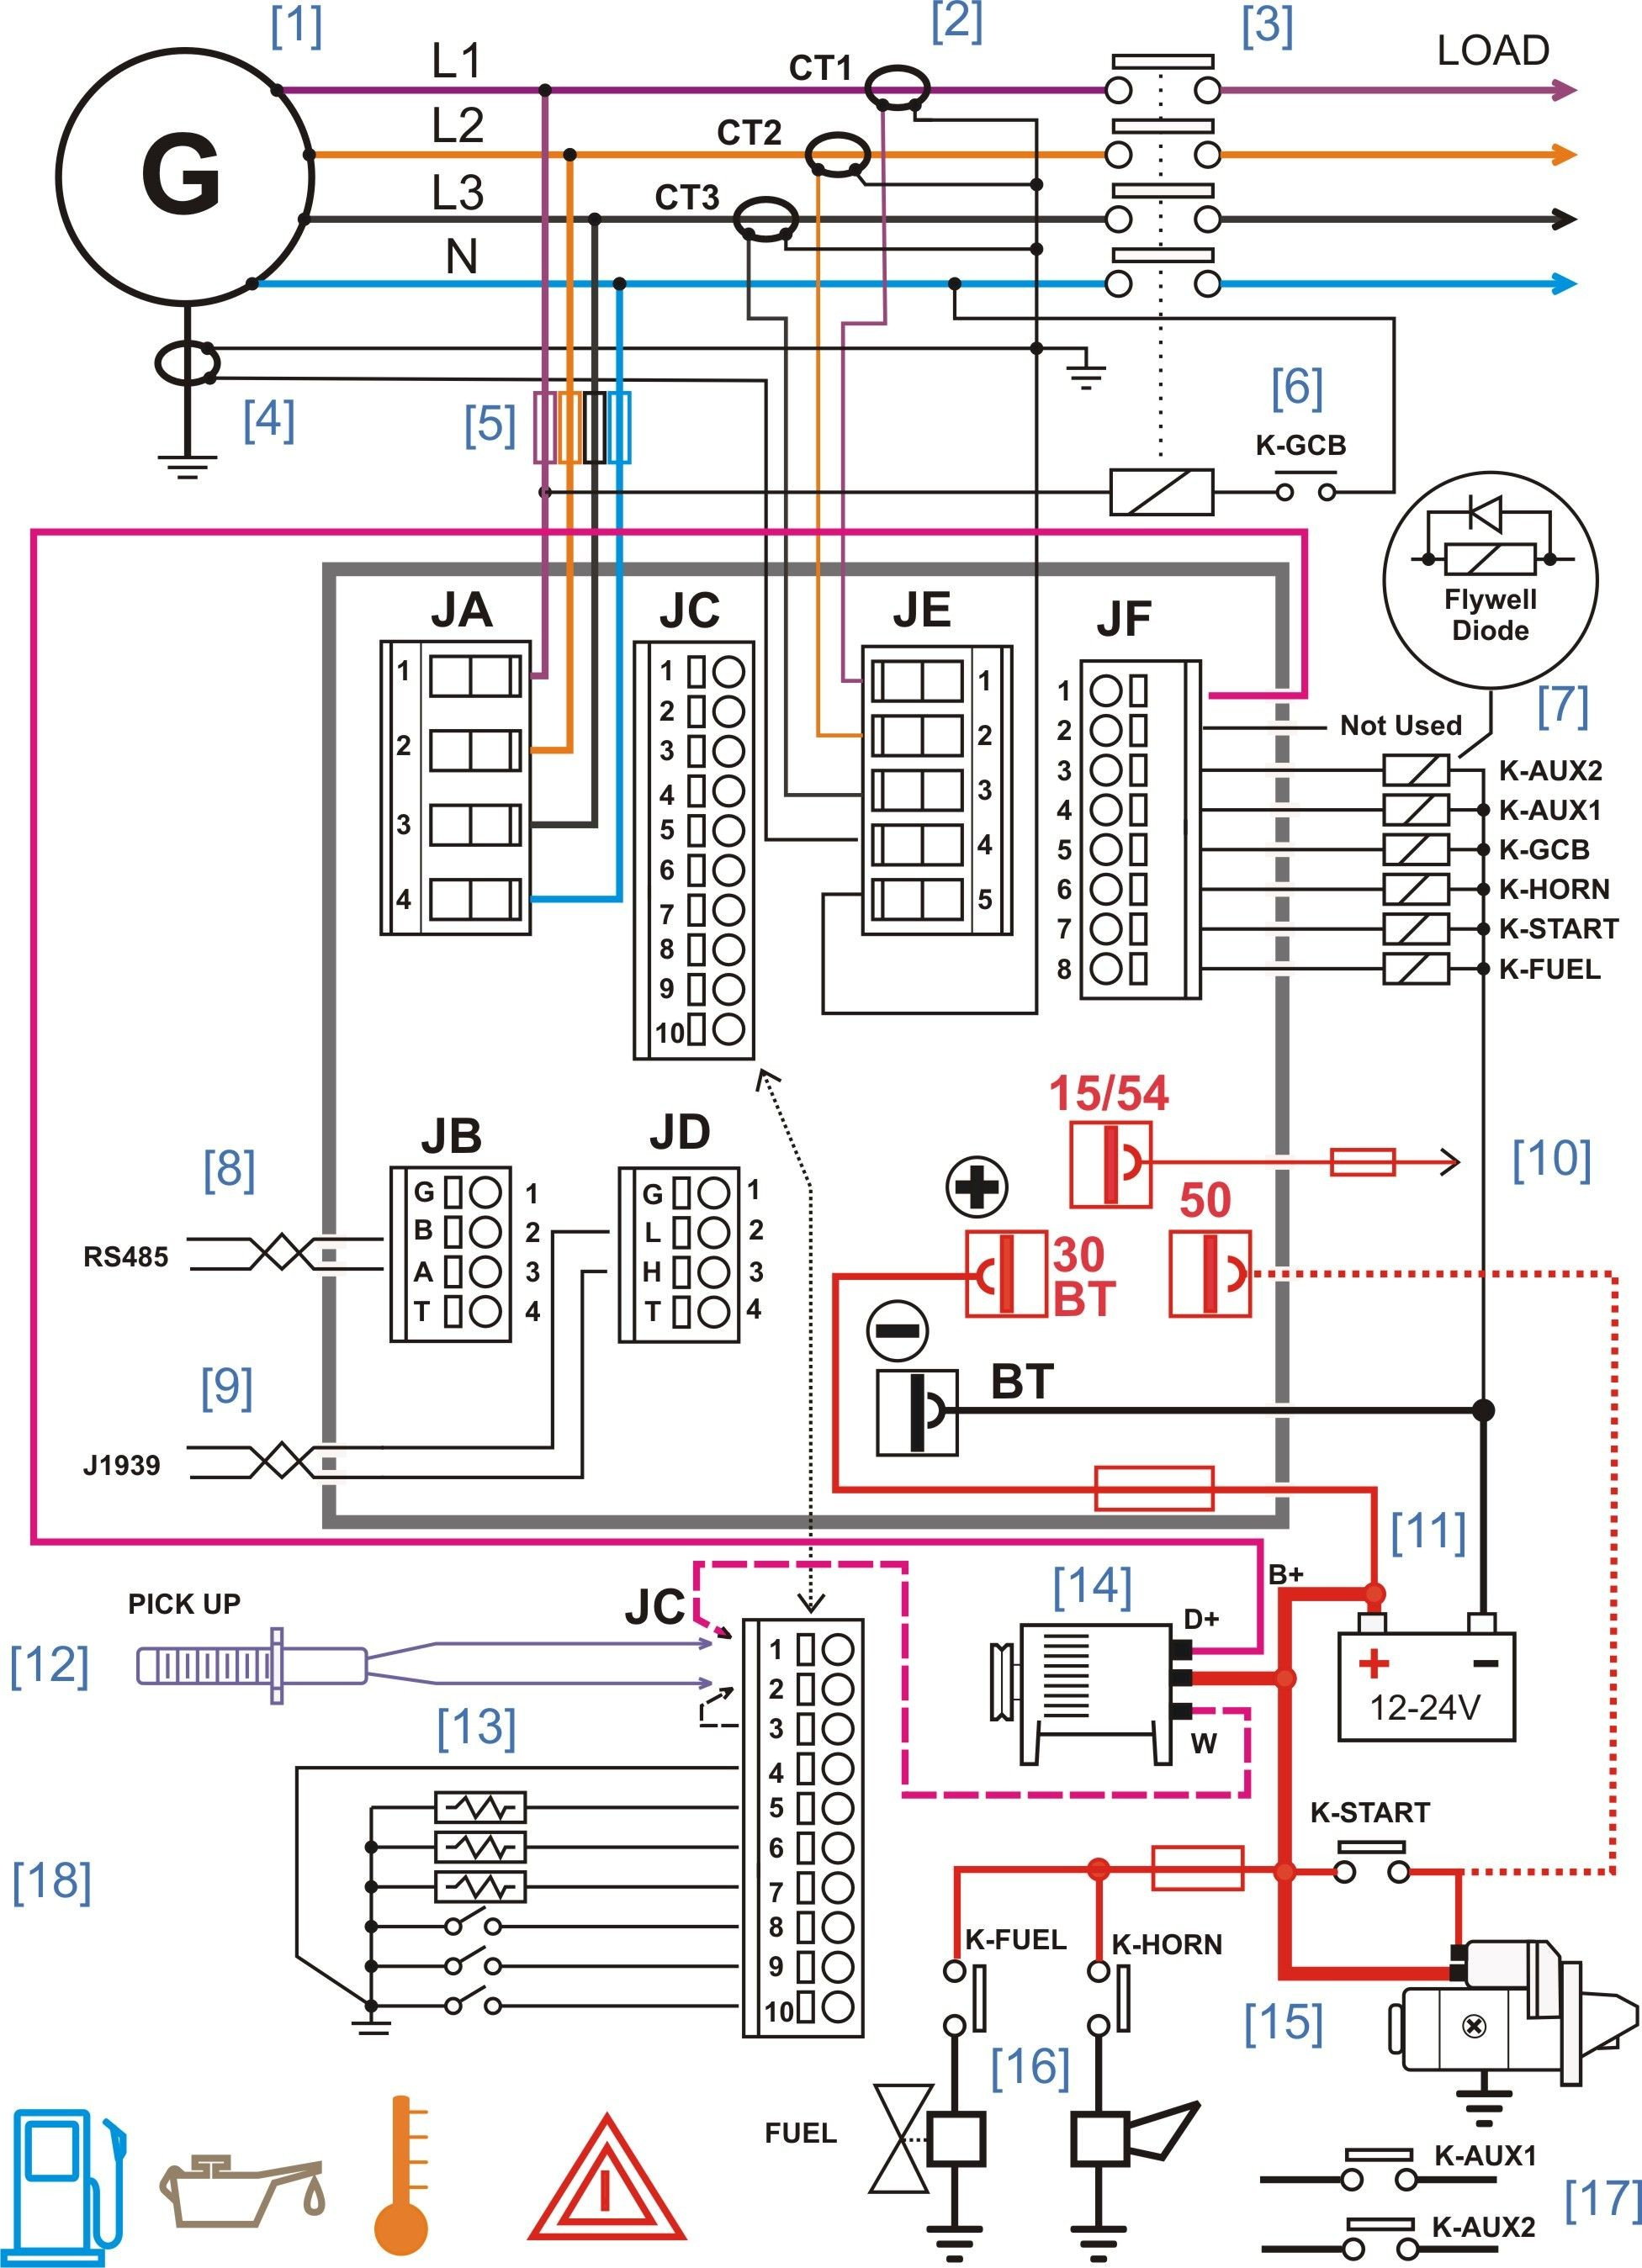 electrical wiring diagram software new wiring diagram image rh mainetreasurechest com Industrial Control Panel Wiring Diagram Lighting Control Panel Wiring